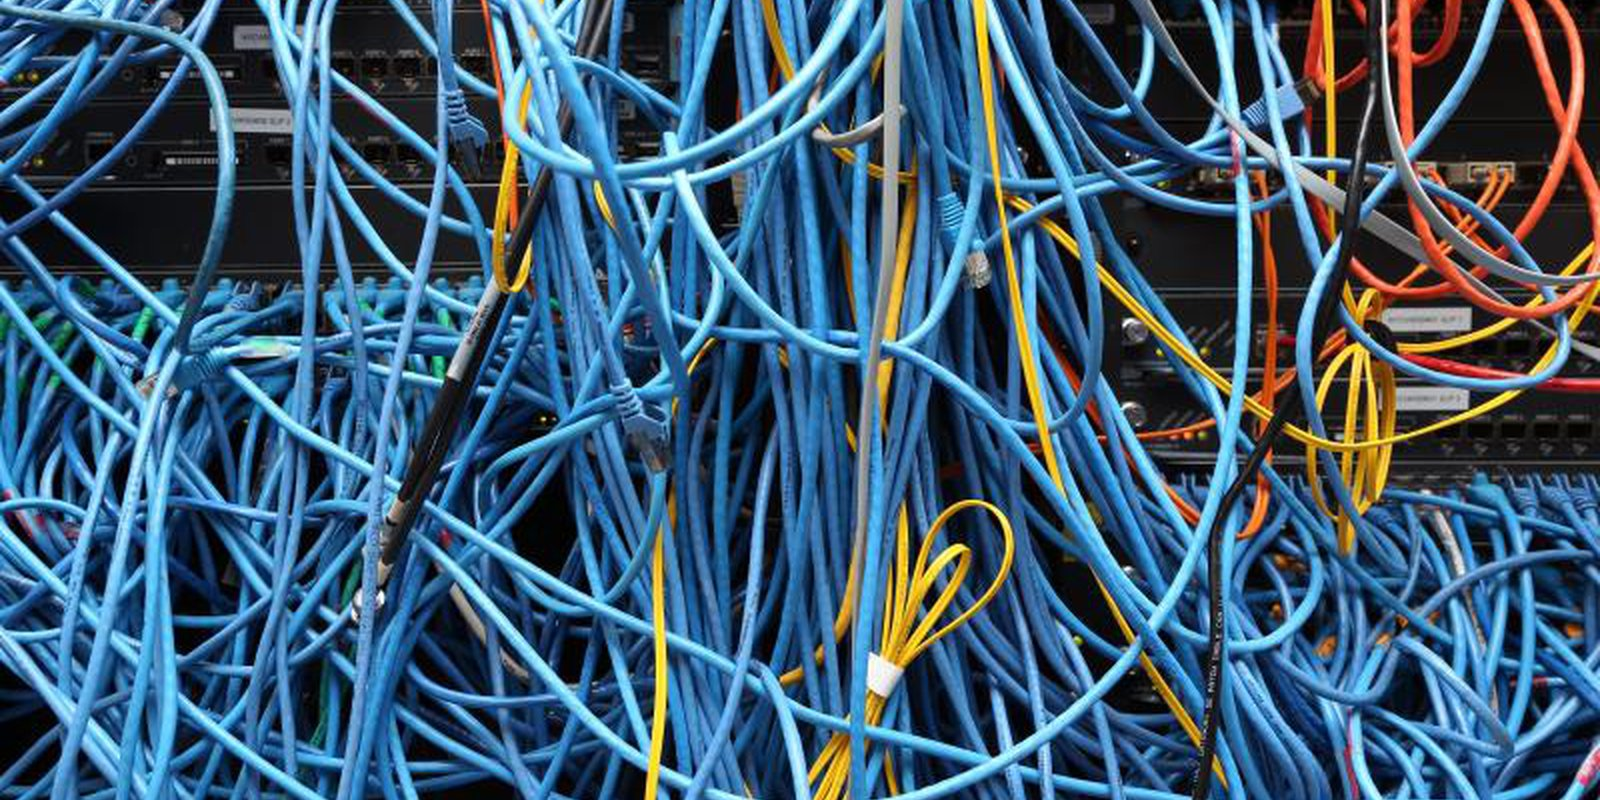 Server room network cables in New York City, November 2014. Photo: Michael Bocchieri/Staff/Getty.